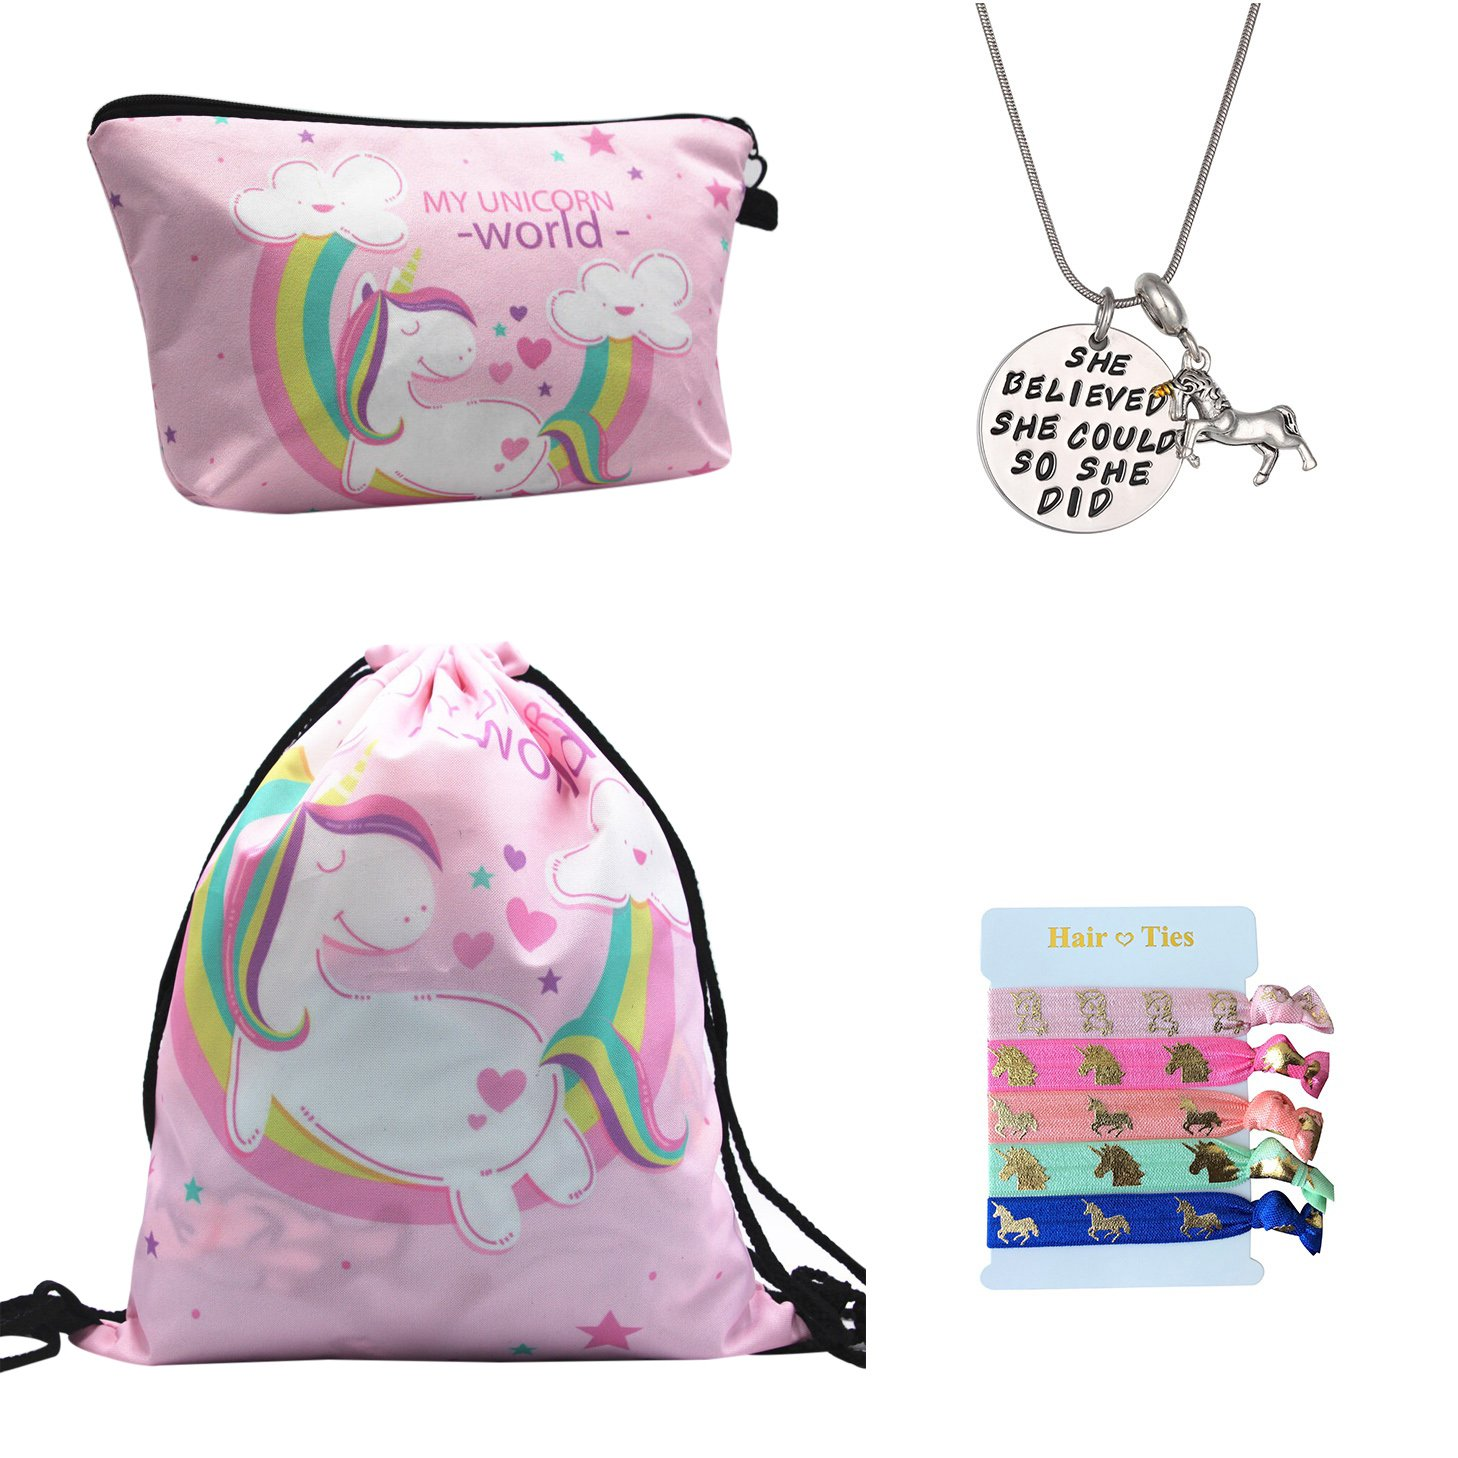 Unicorn Gifts for Girls 4 Pack - Unicorn Drawstring Backpack/Makeup Bag/Inspirational Necklace/Hair Ties (Unicorn World - Pink)